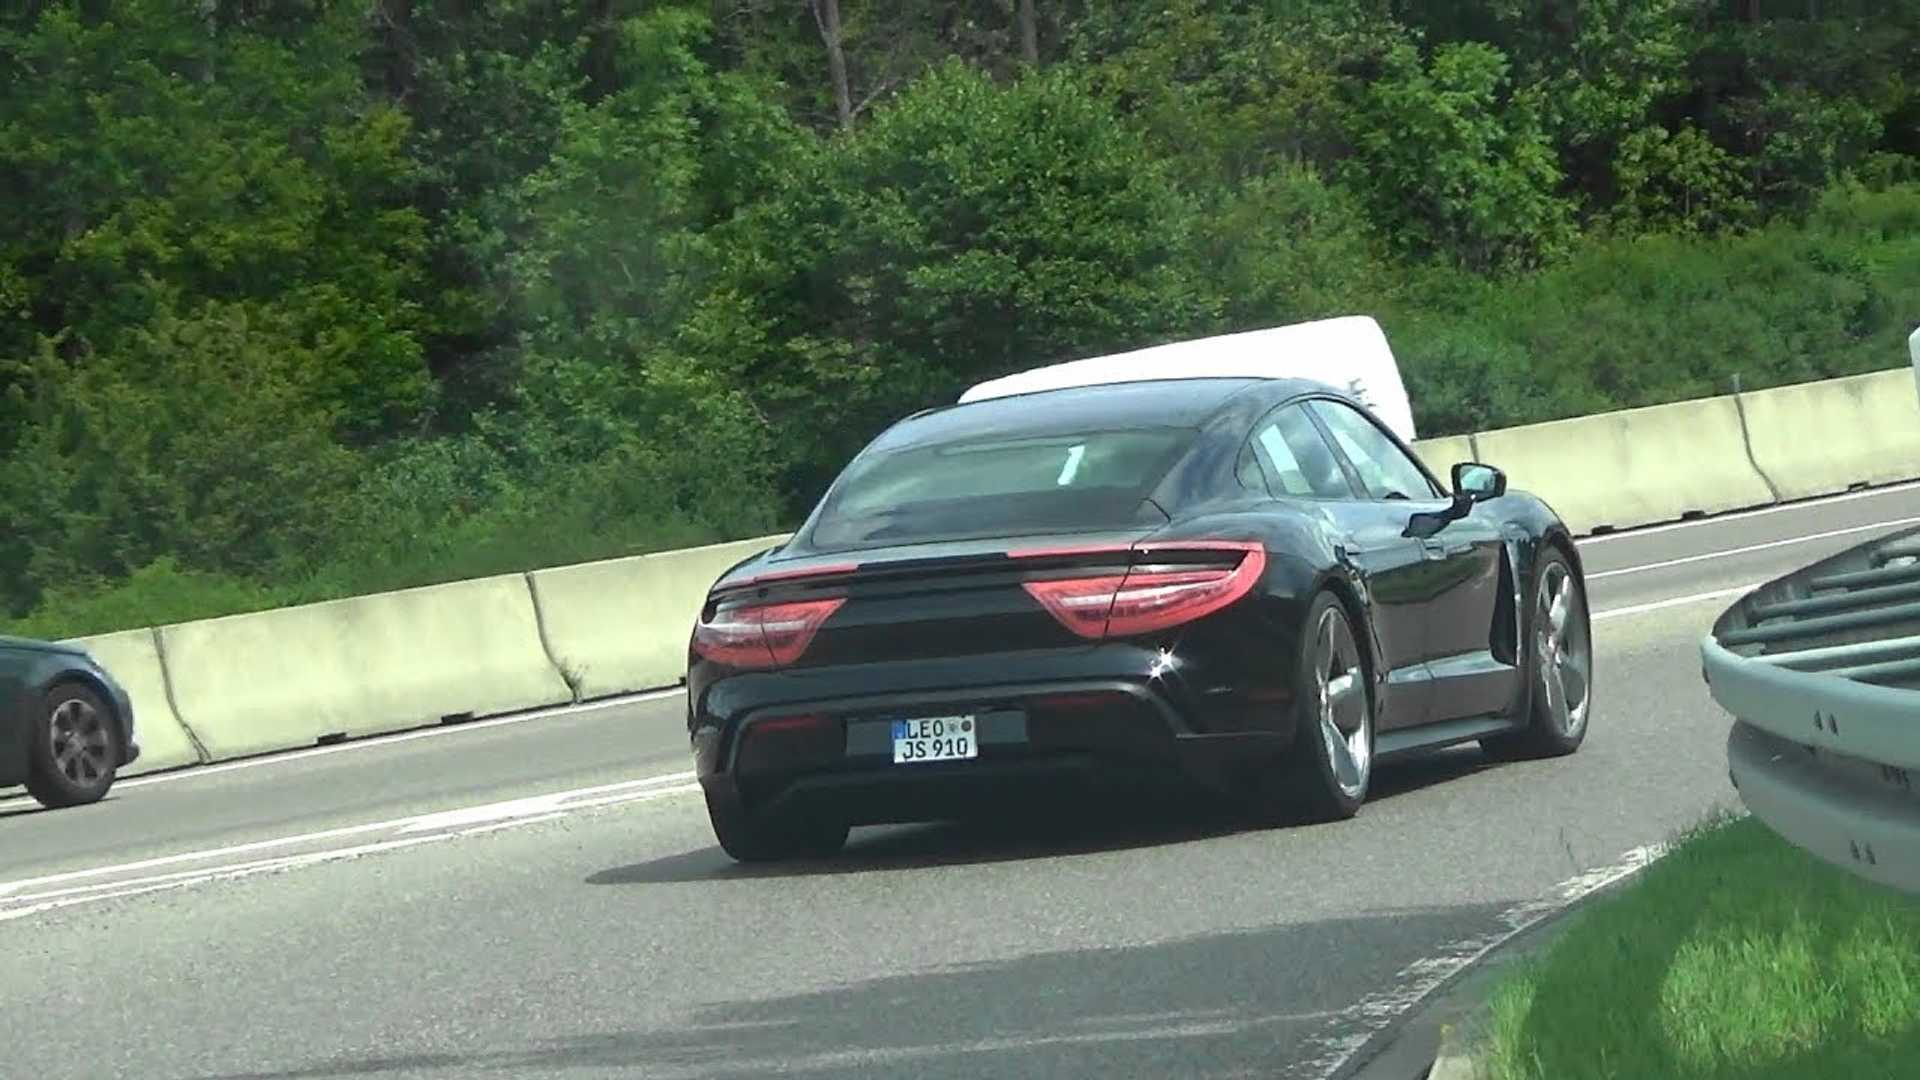 Porsche Taycan Prototypes Spotted Just Weeks Before Reveal: Videos